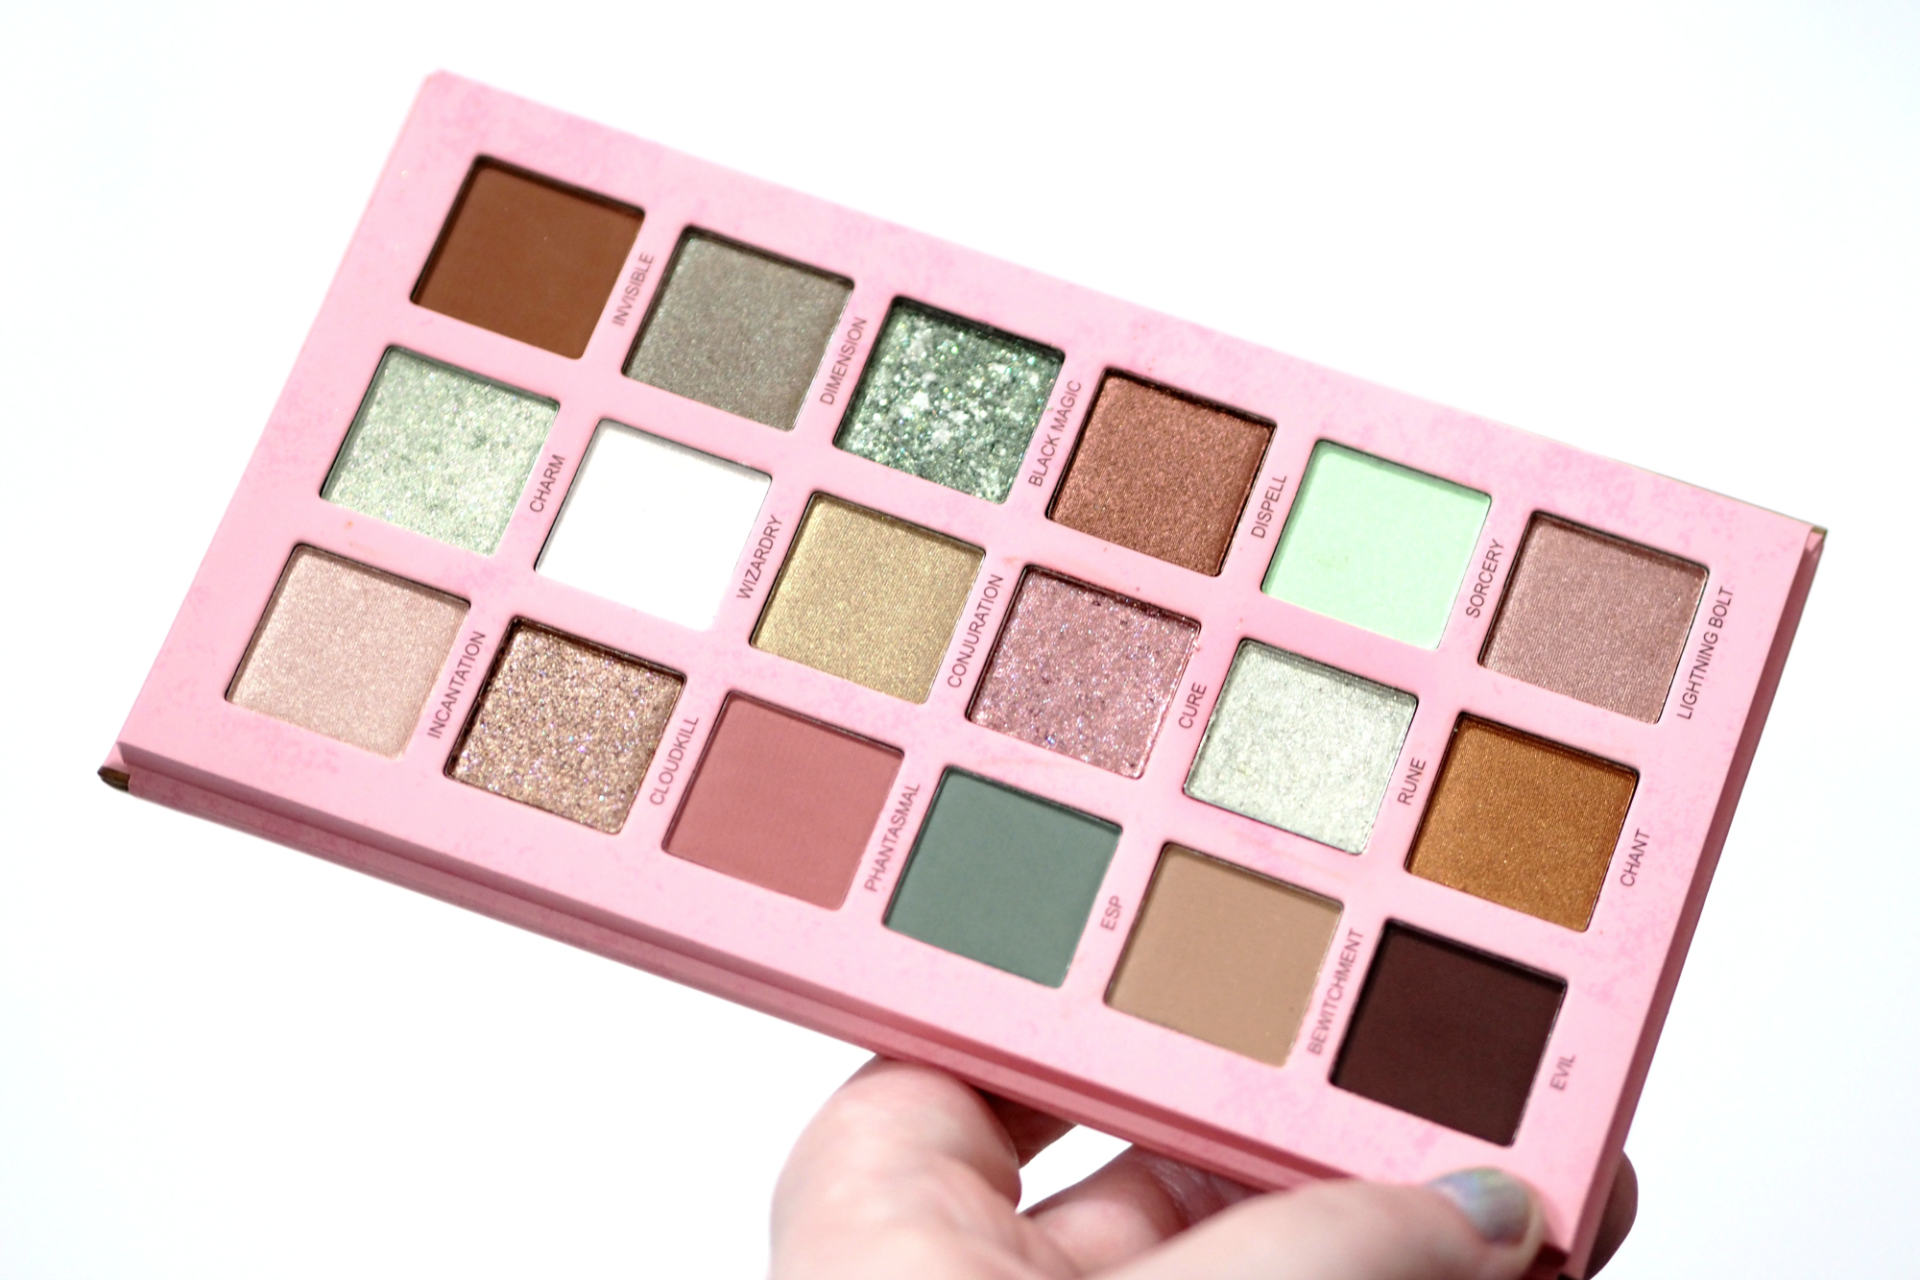 UCANBE Magic Spell Eyeshadow Palette Review and Swatches